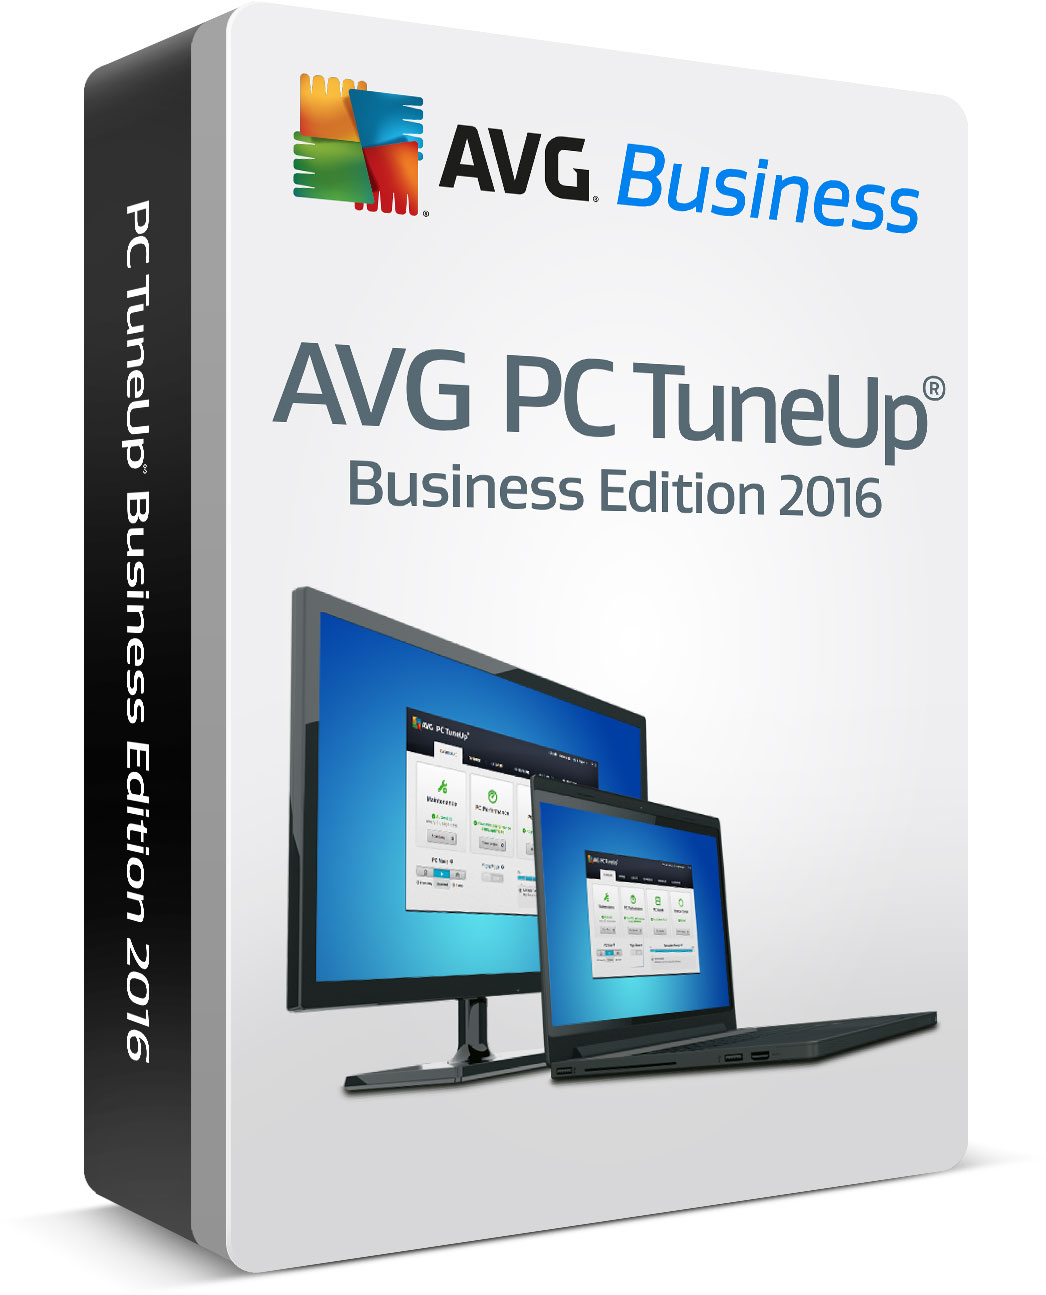 AVG PC TuneUp Business Edition, 1 year 2 computers